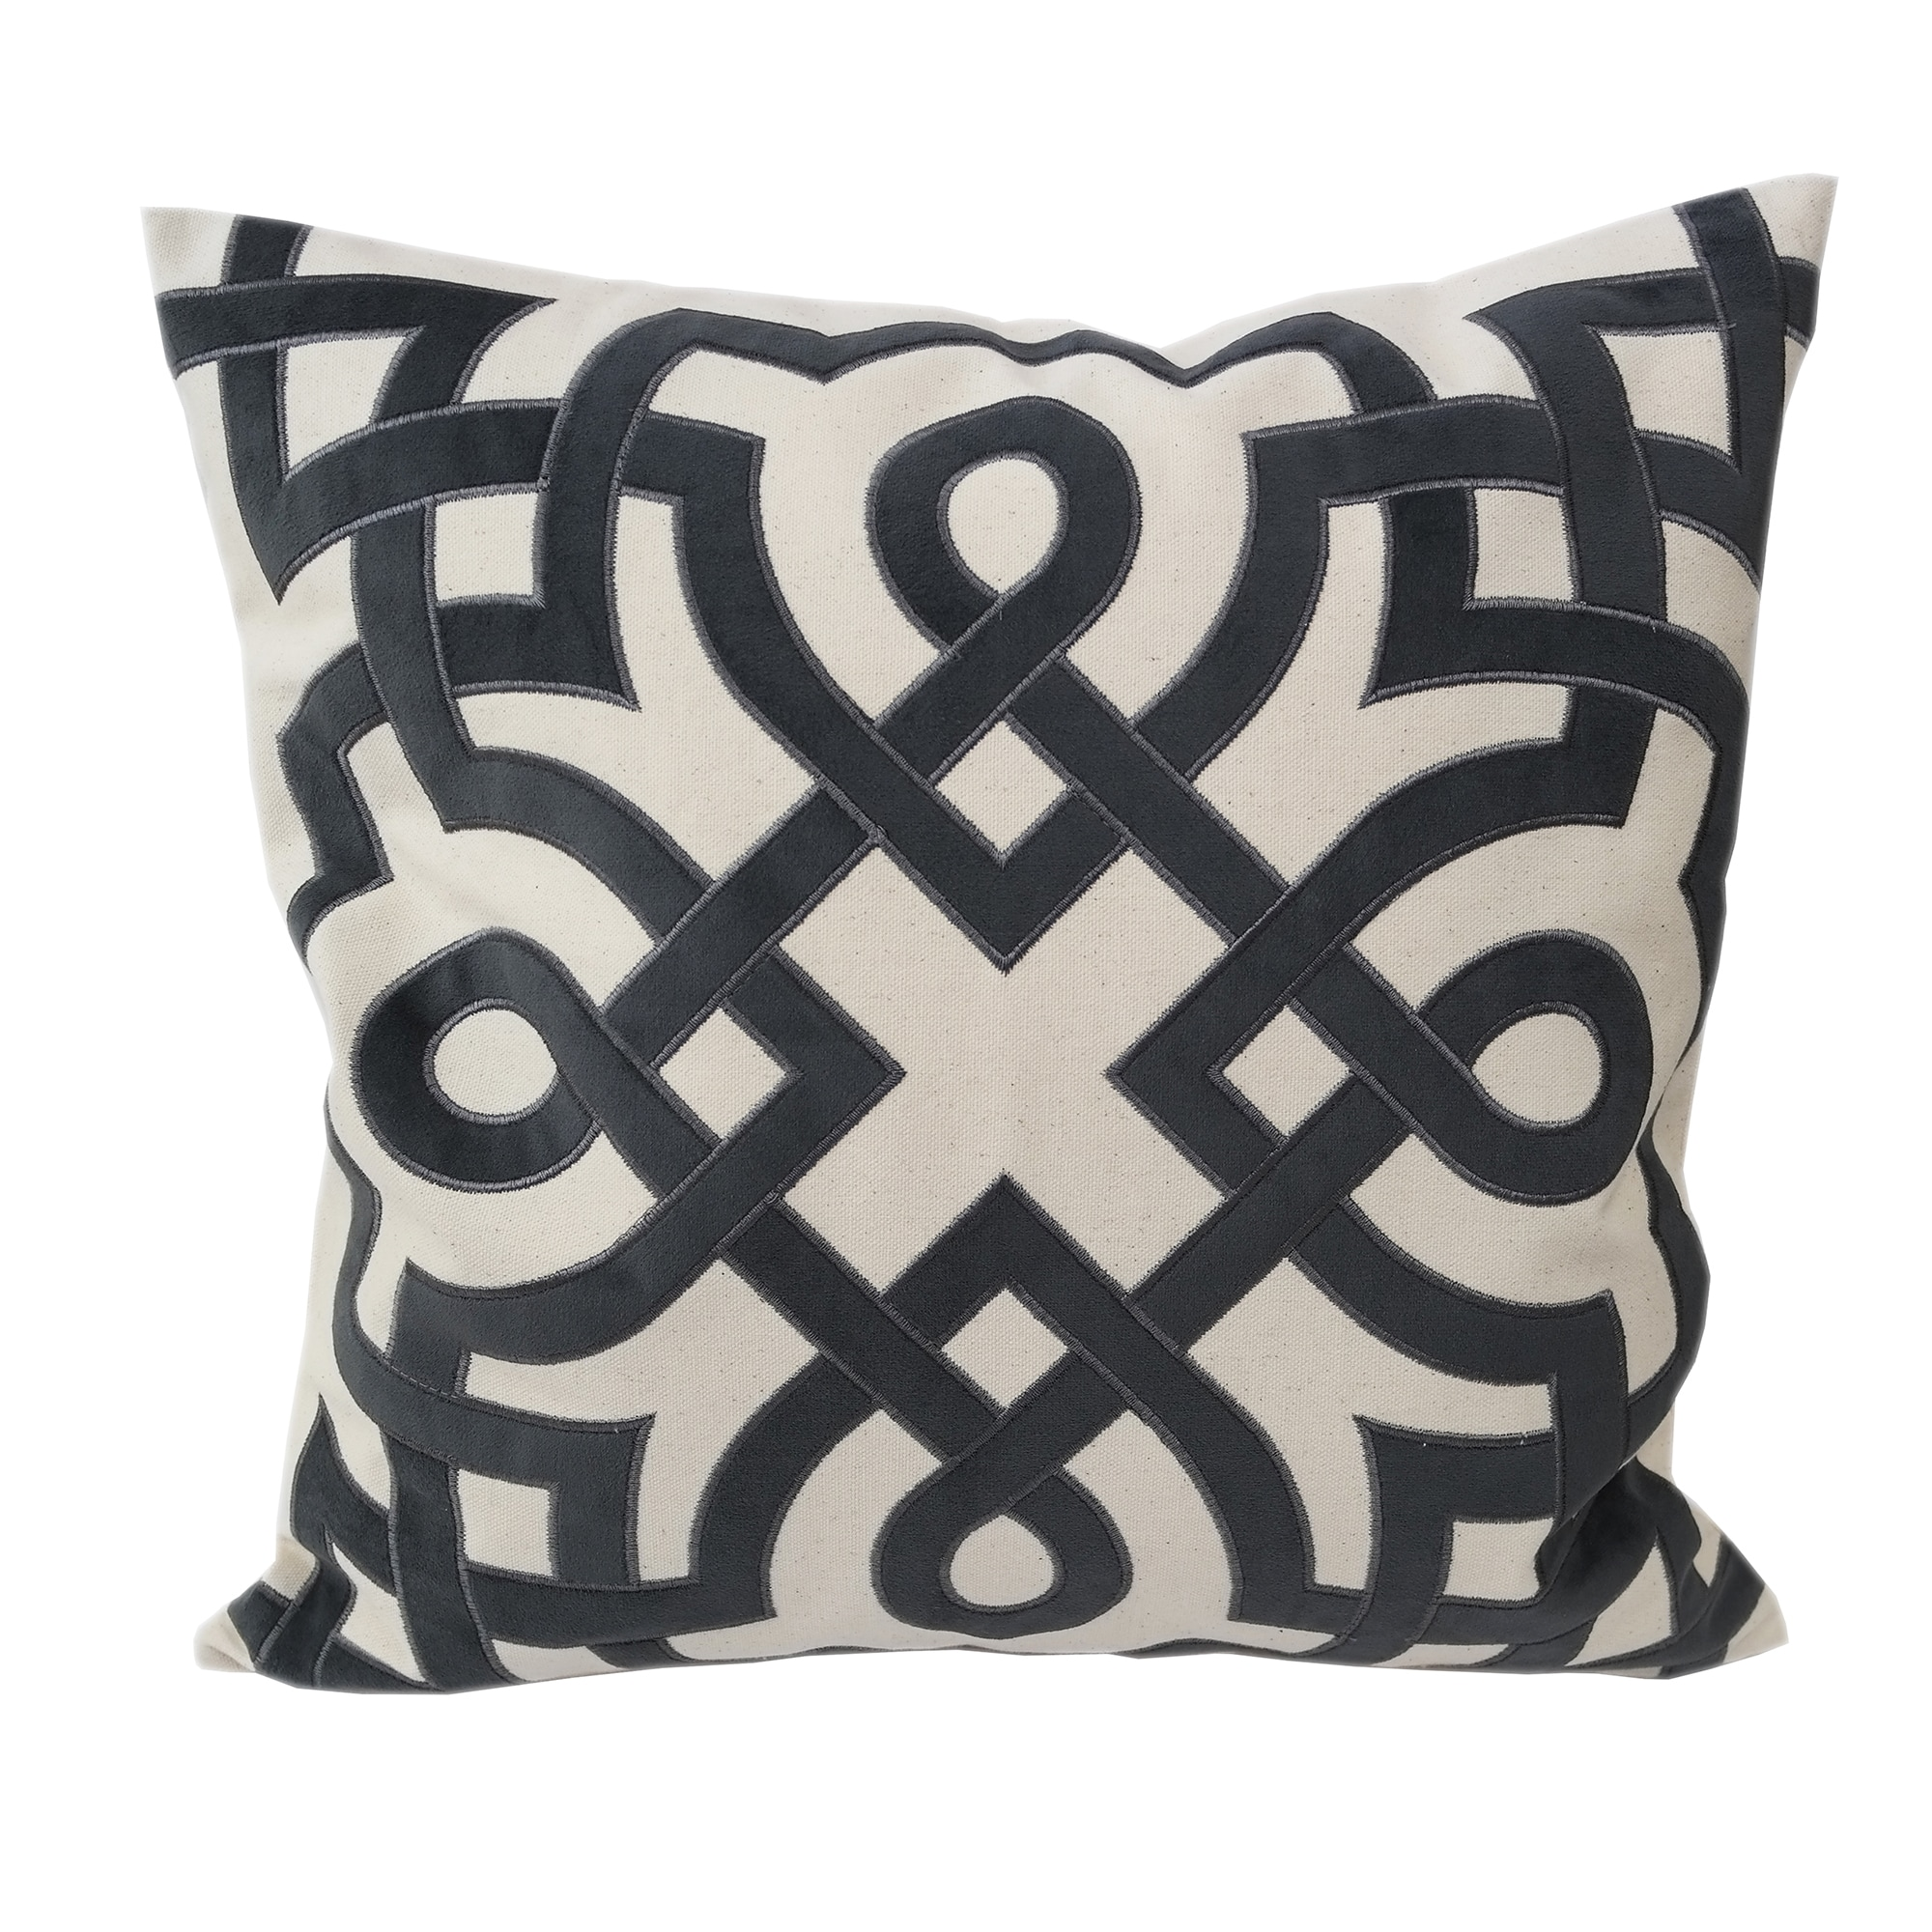 Home Accent Pillows Natural And Grey Geometric Applique Embroidered Poly Linen 20 Inch Throw Pillow Overstock 14662135